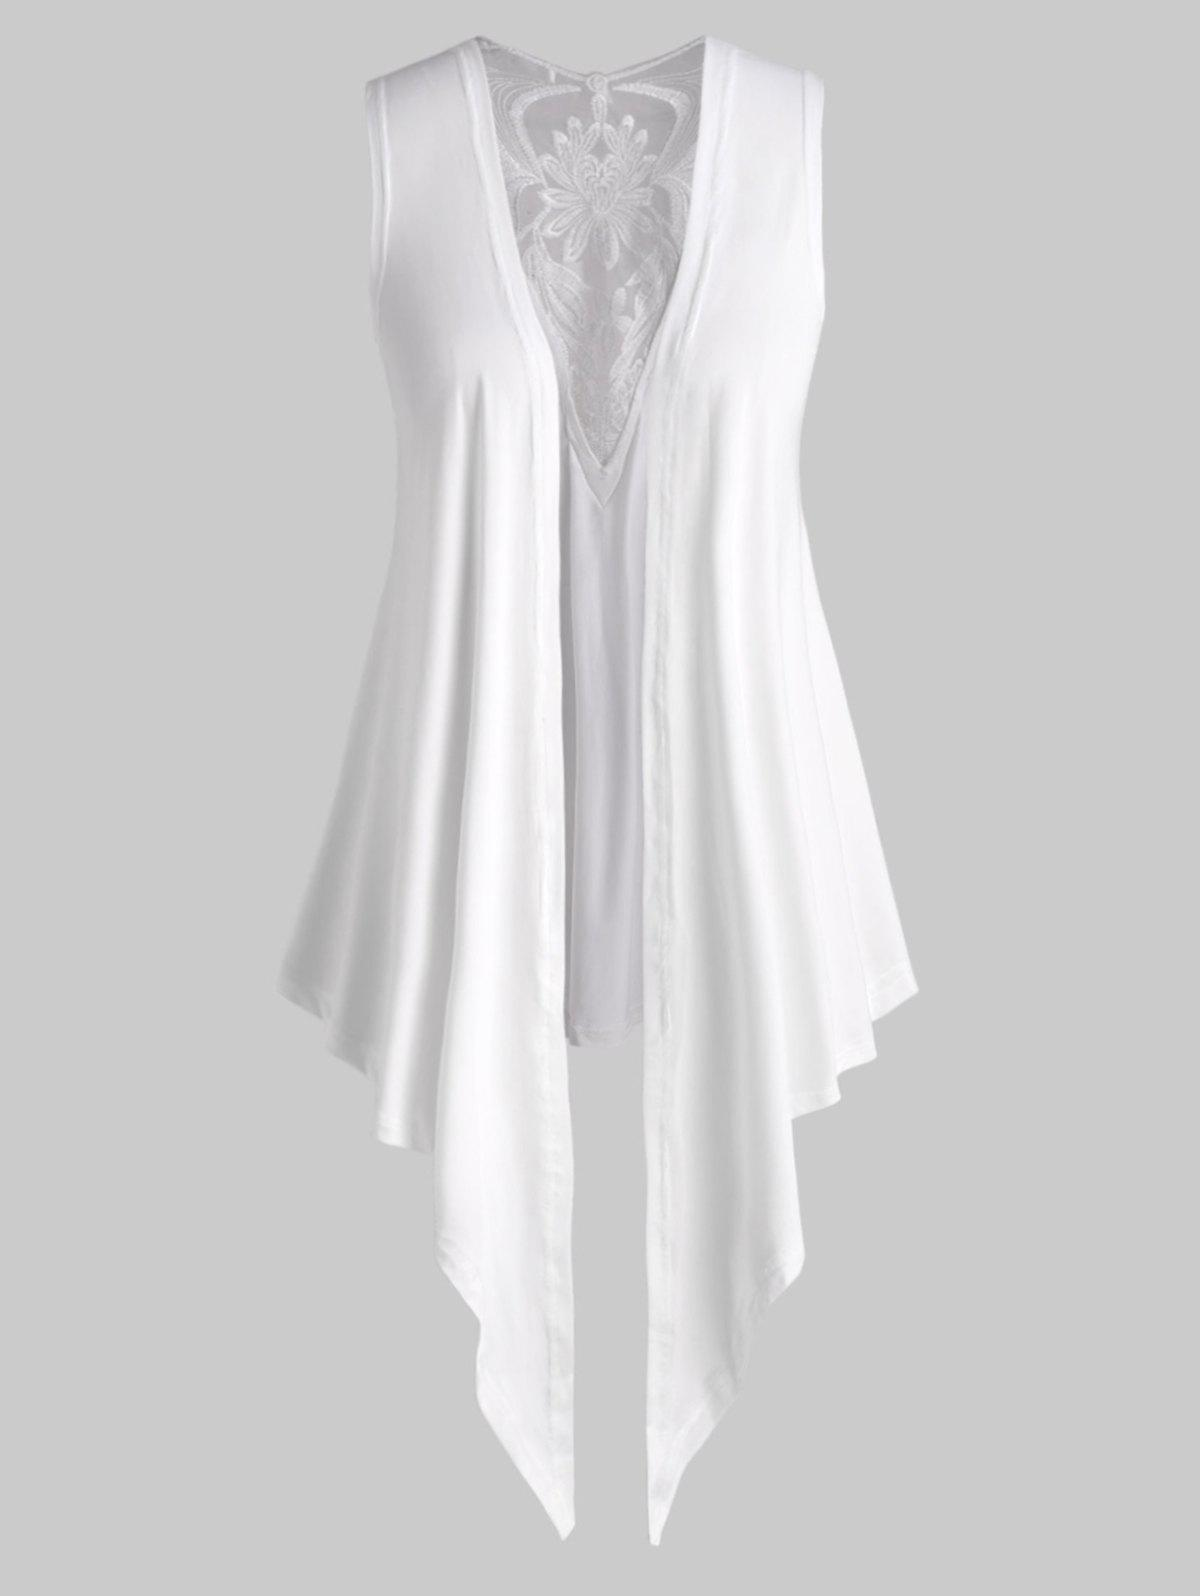 Embroidered Mesh Panel Open Front Plus Size Top - WHITE 5X